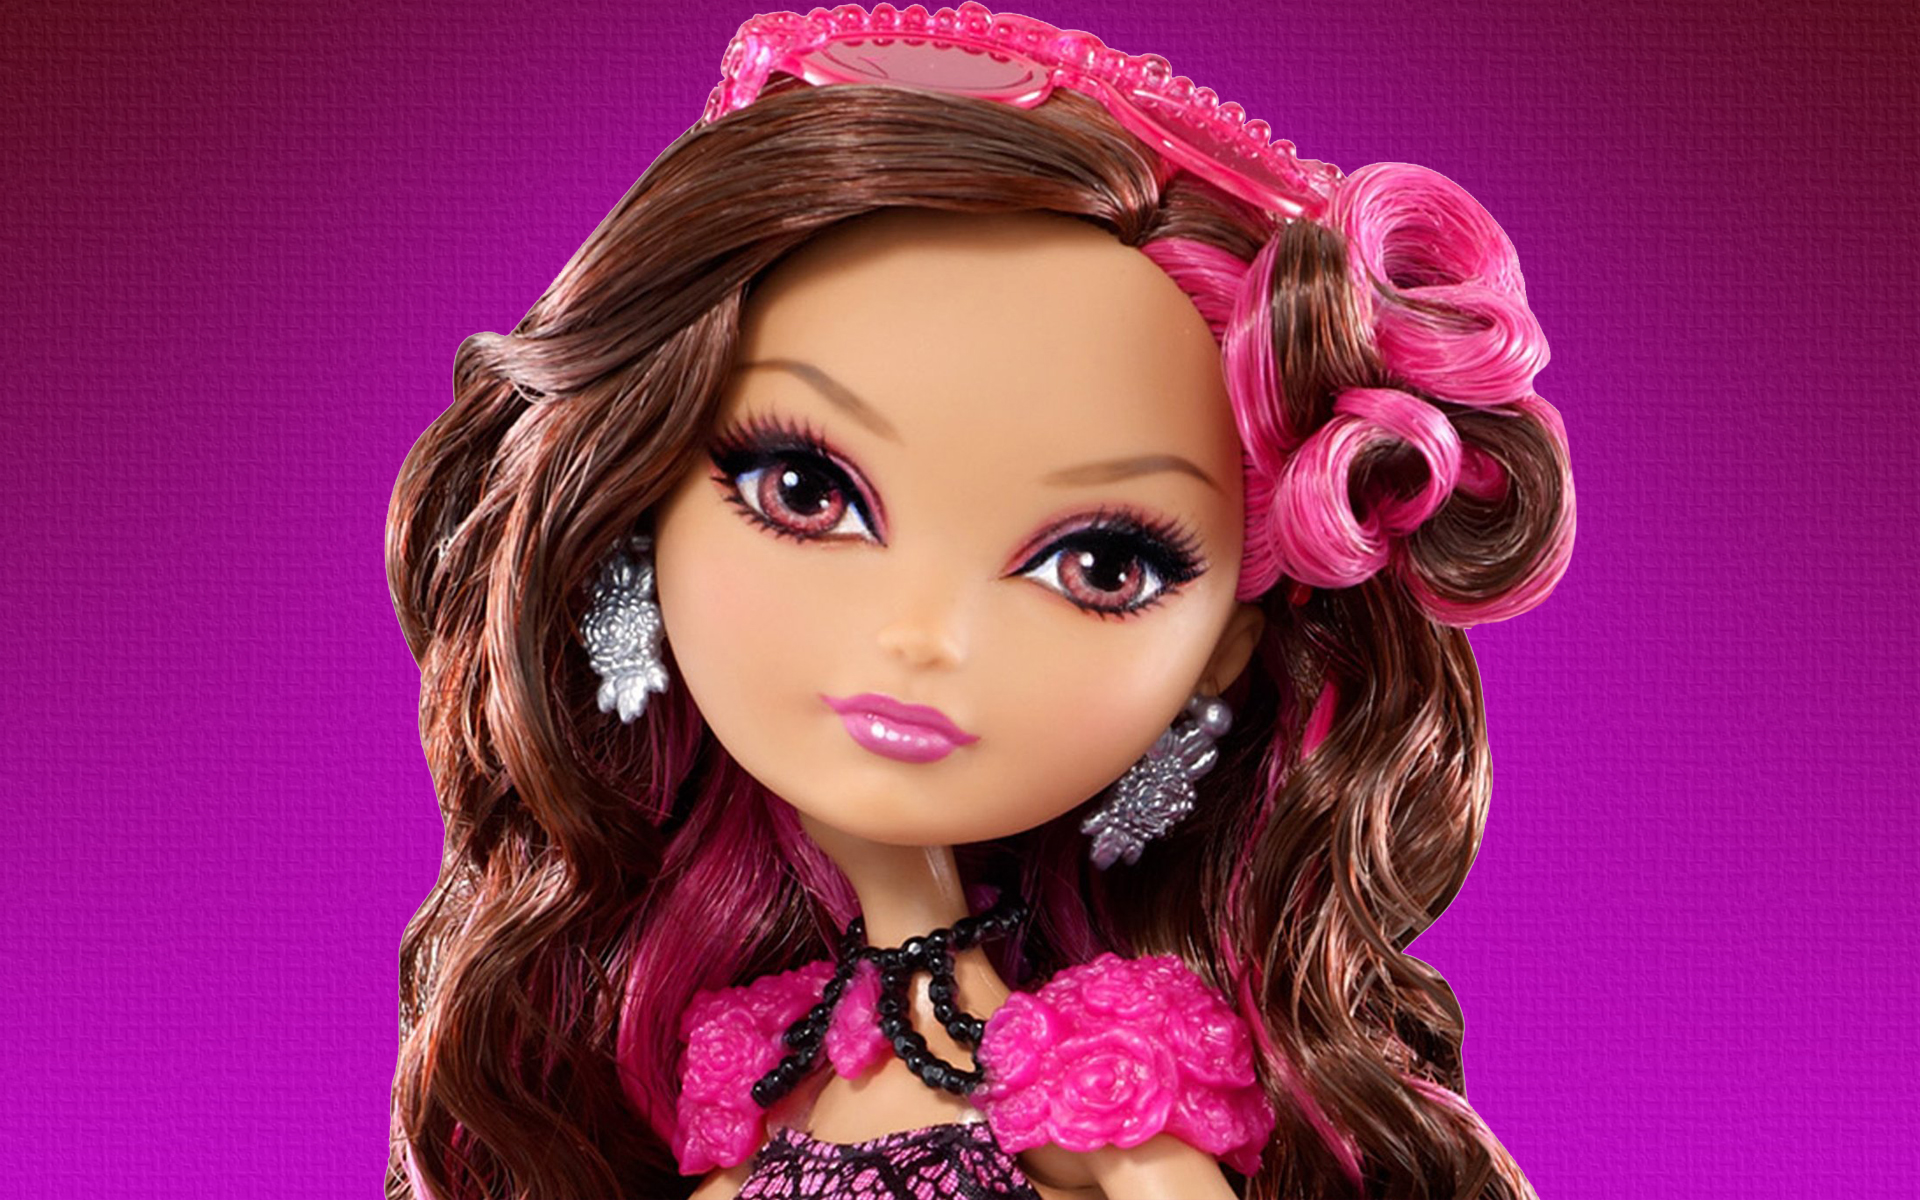 cute and beautiful barbie doll wallpapers